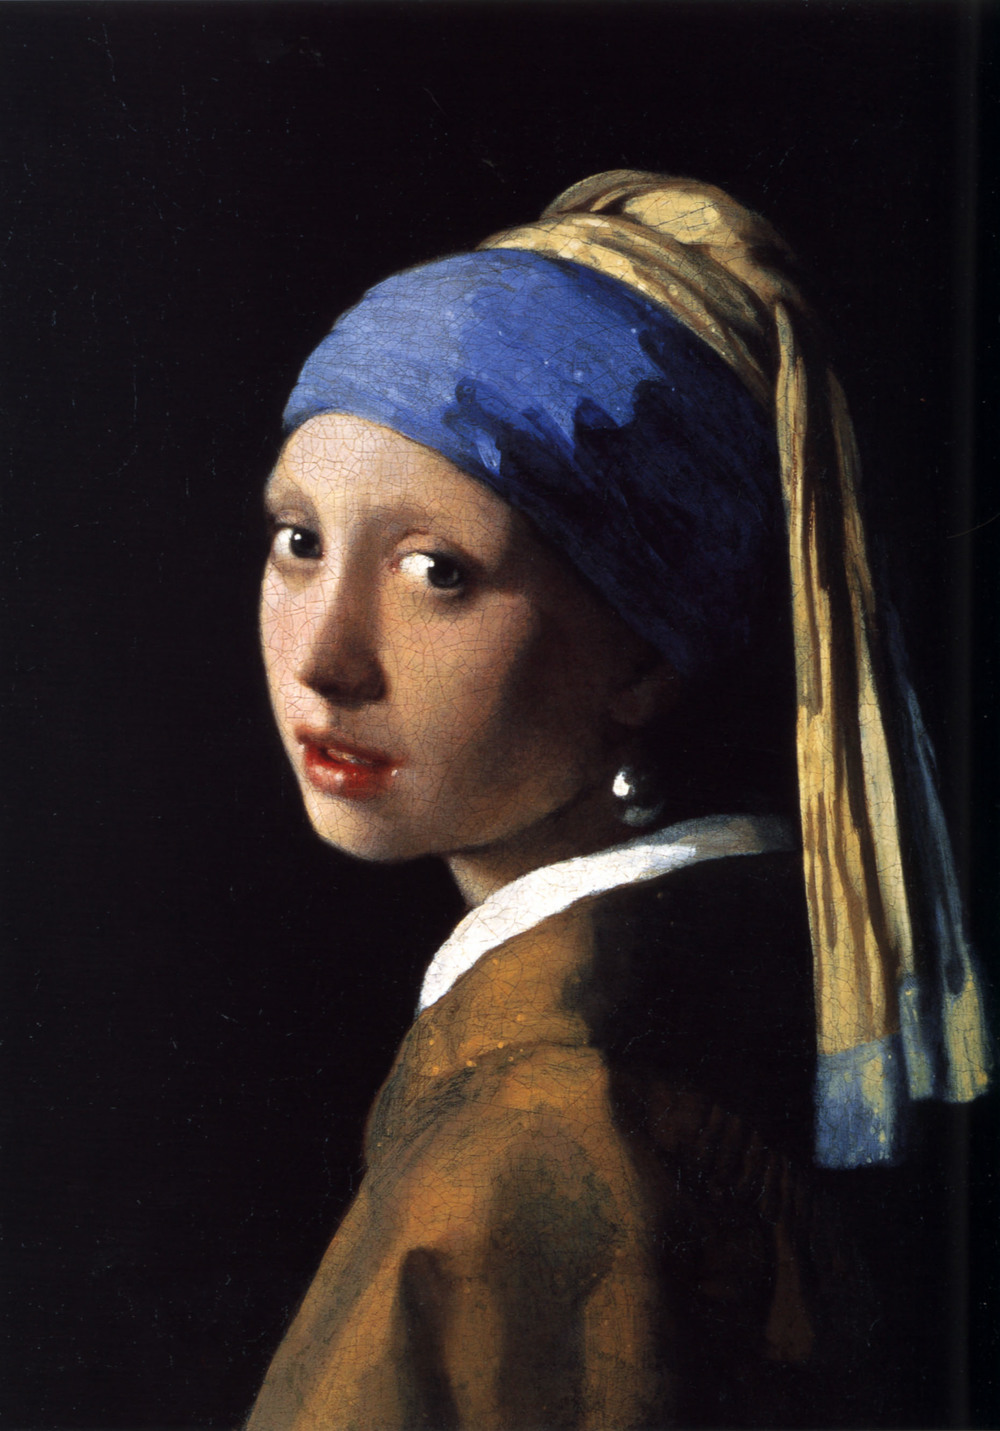 The painting    Girl with a Pearl Earring    (  Dutch  :     Het Meisje met de Parel    ) is one of   Dutch     painter     Johannes Vermeer  's masterworks and, as the name implies, uses a   pearl   earring for a   focal point  . It has been in the collection of the   Mauritshuis   gallery in   The Hague   since 1902. (via wikipedia)